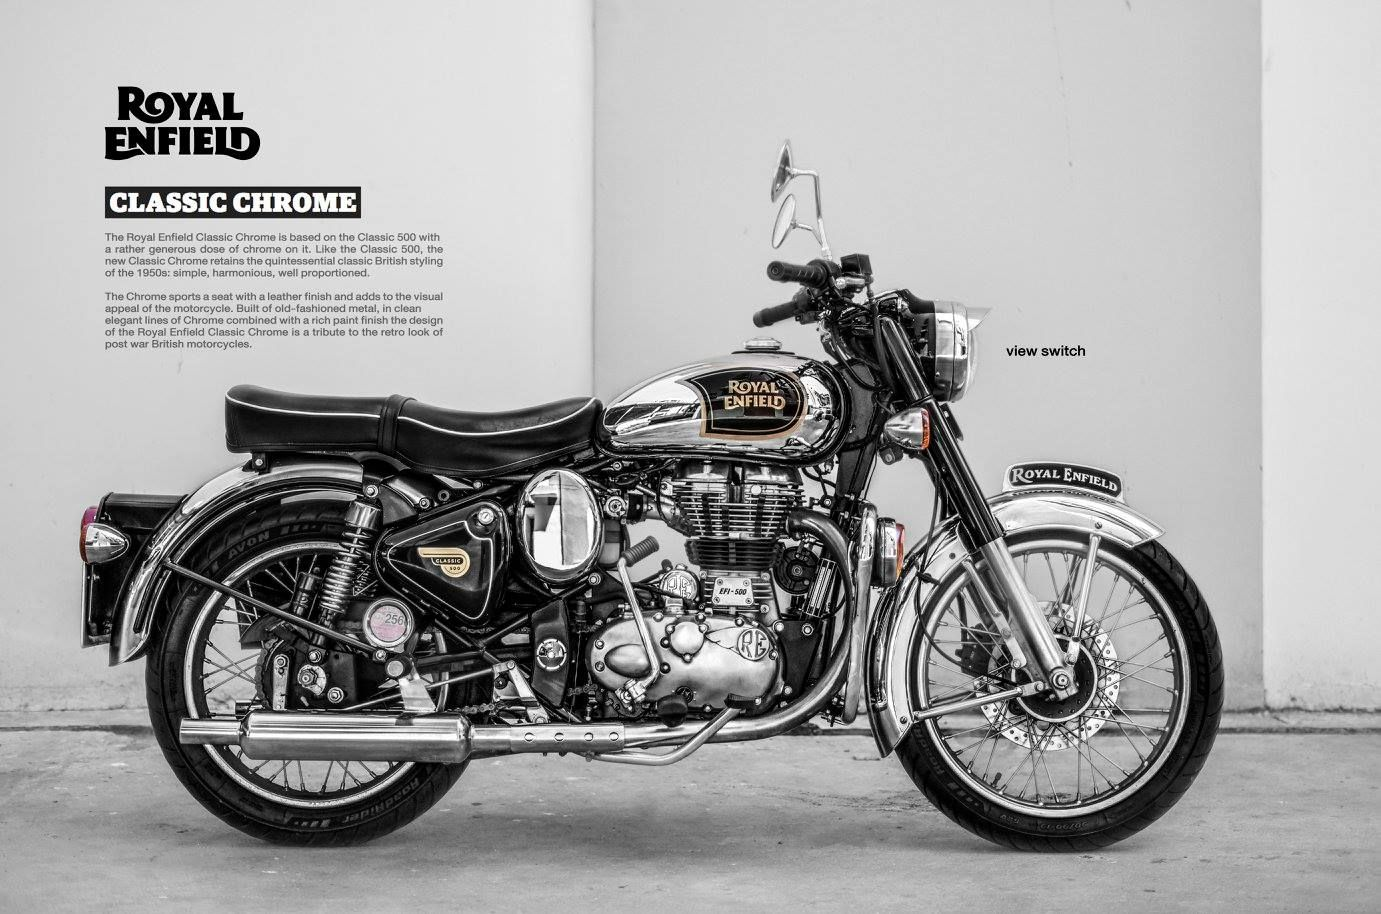 Pin By Hendro Purwanto On Enfield Stuff Enfield Classic Royal